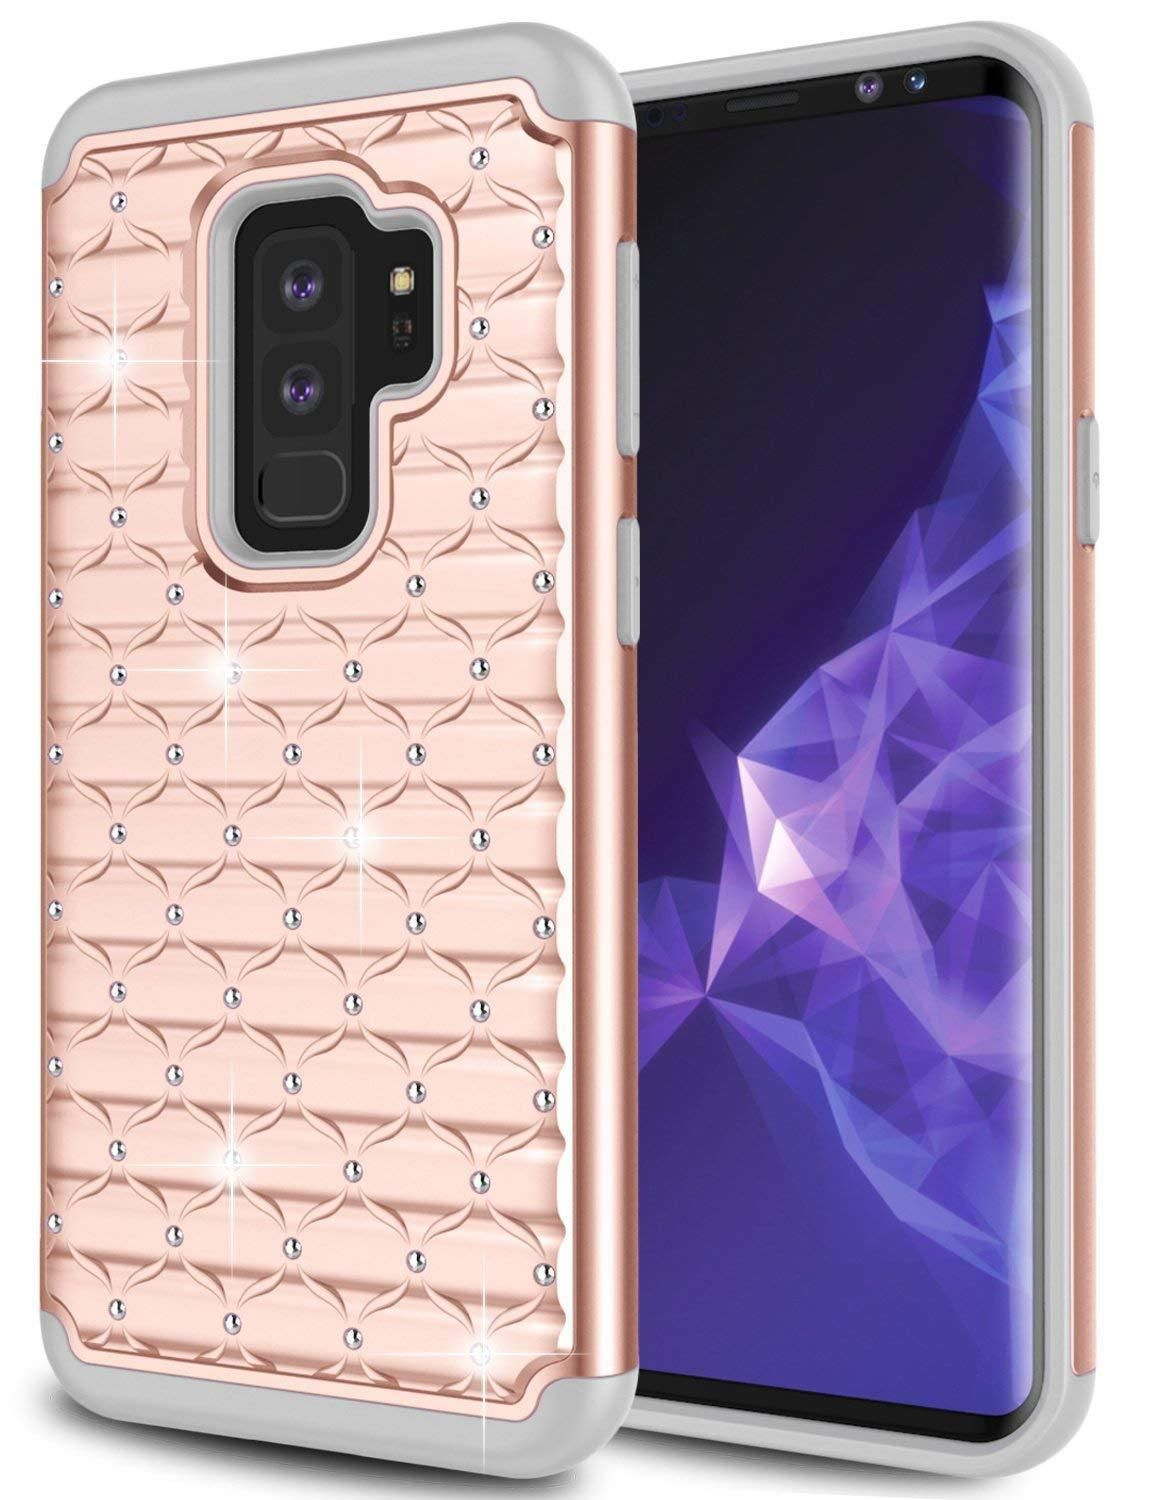 Samsung Galaxy S9 Plus Luxury Glitter Bling Shockproof Protective Case Rose Gold Galaxy S9 Plus Bling Case Be Phone Cases Samsung Galaxy Samsung Galaxy 9 Case